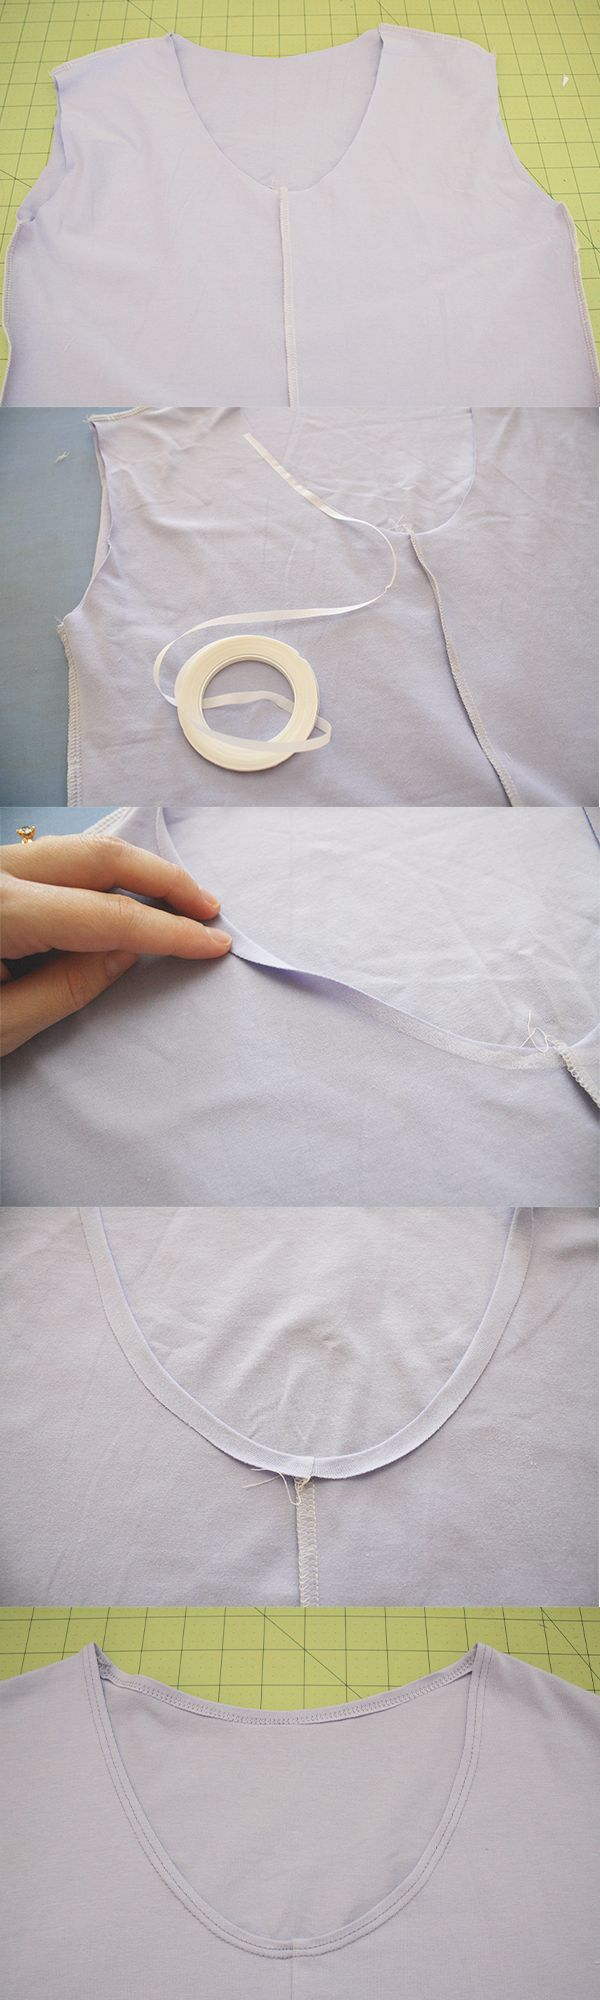 How to sew the easiest knit neckline // shown on Megan Nielsen's Briar pattern